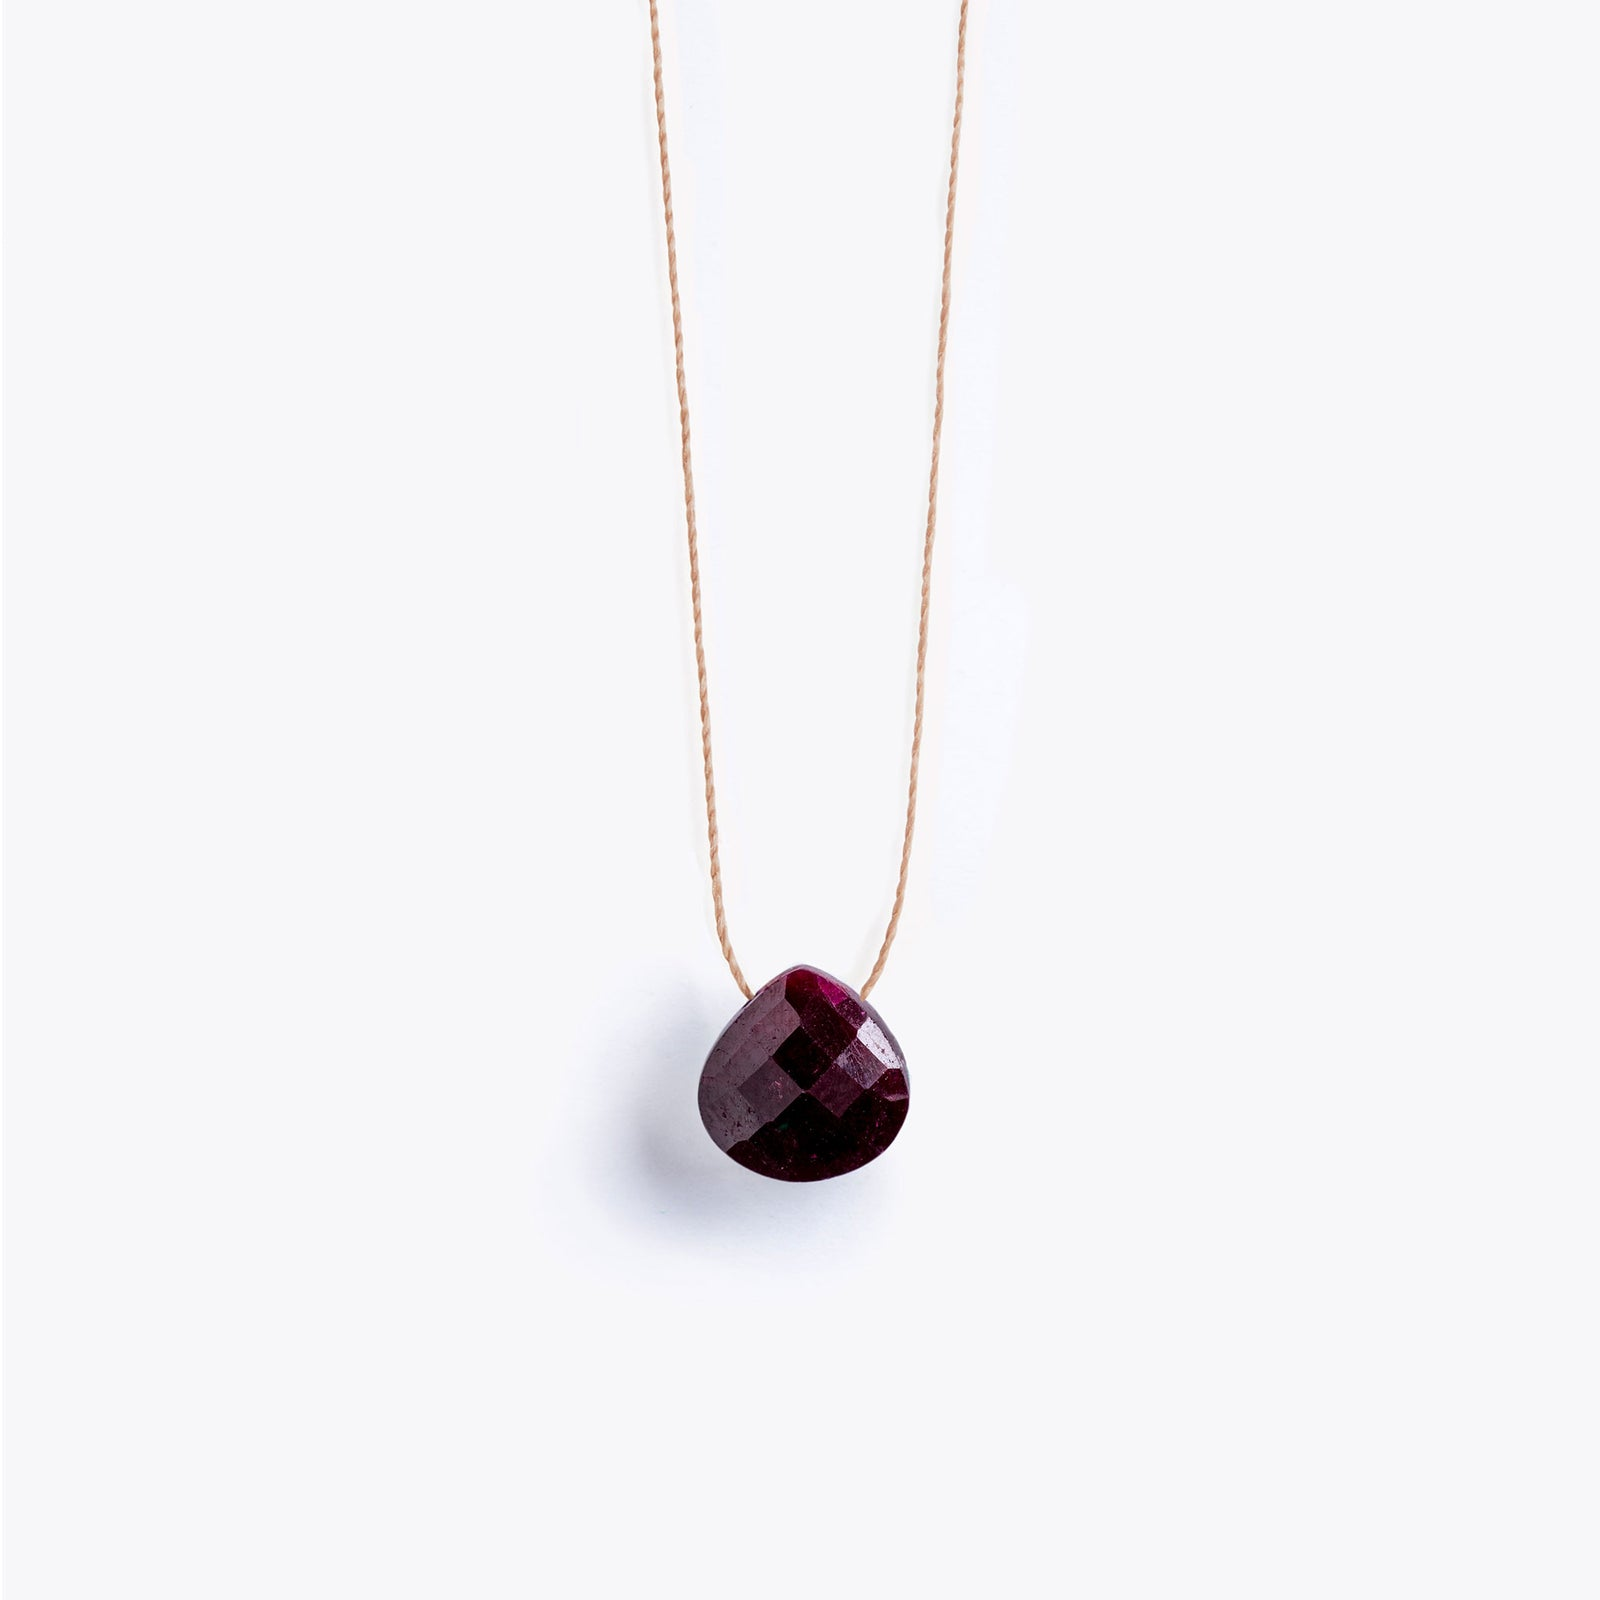 Wanderlust Life Ethically Handmade jewellery made in the UK. Minimalist gold and fine cord jewellery. ruby fine cord necklace